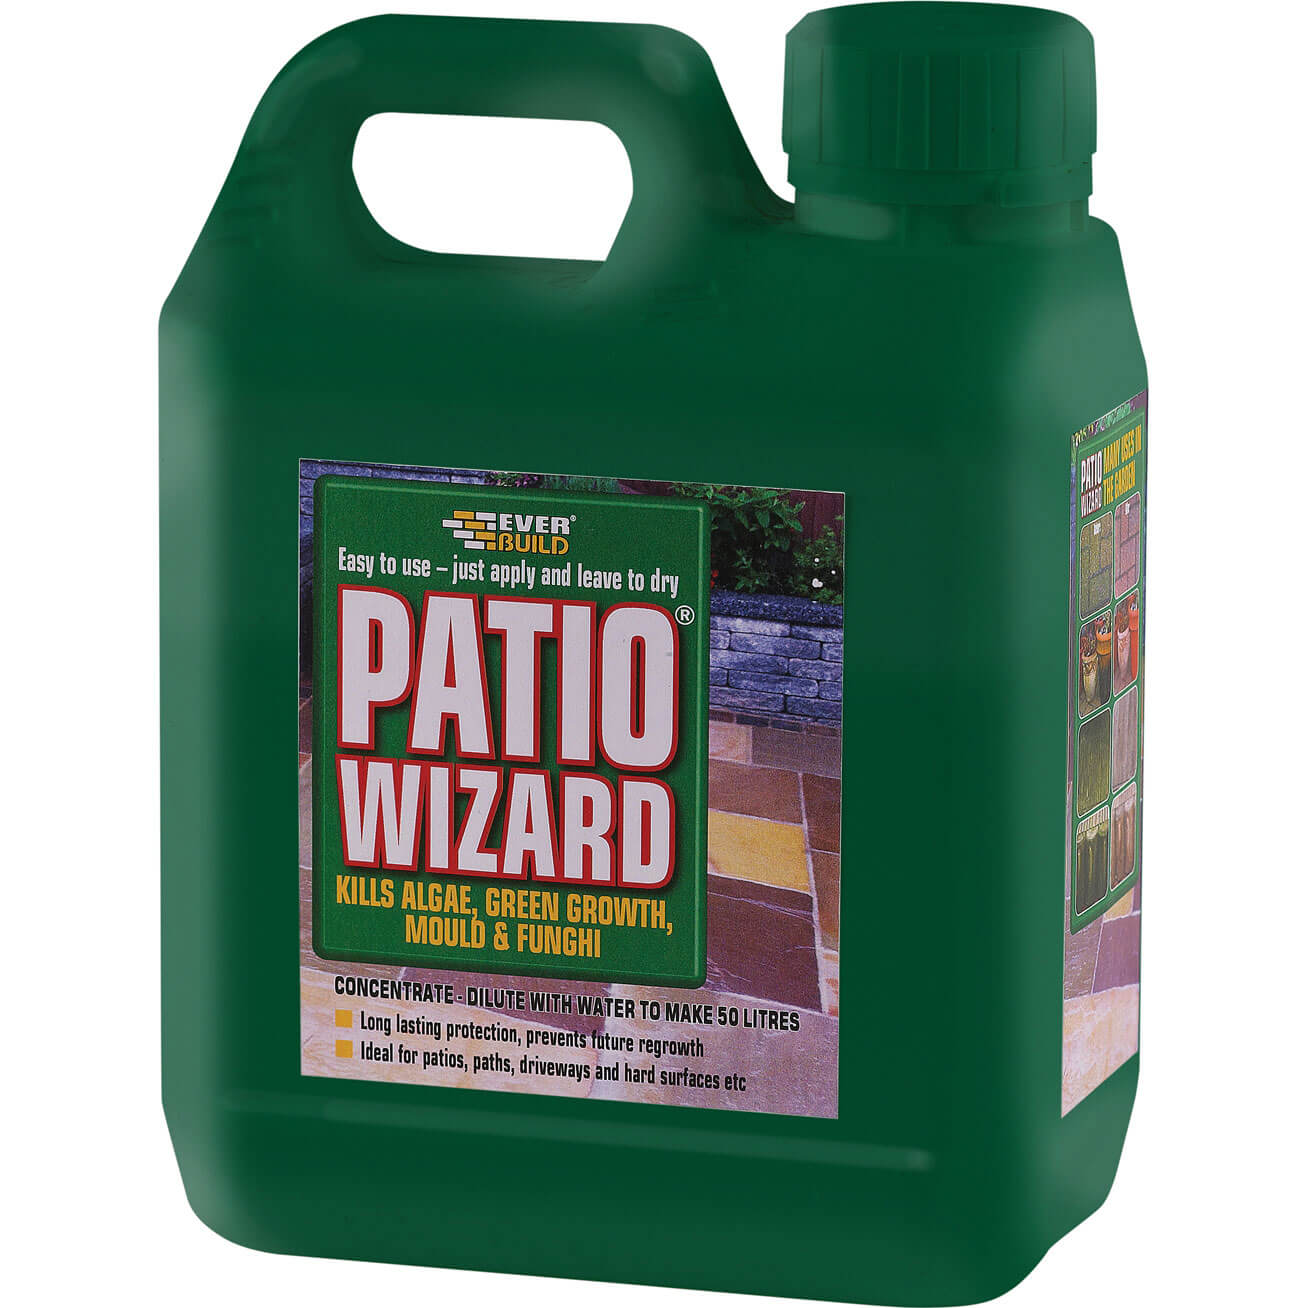 Image of Everbuild Patio Wizard Algae, Green Growth, Mould & Fungus Remover Concentrate 1L